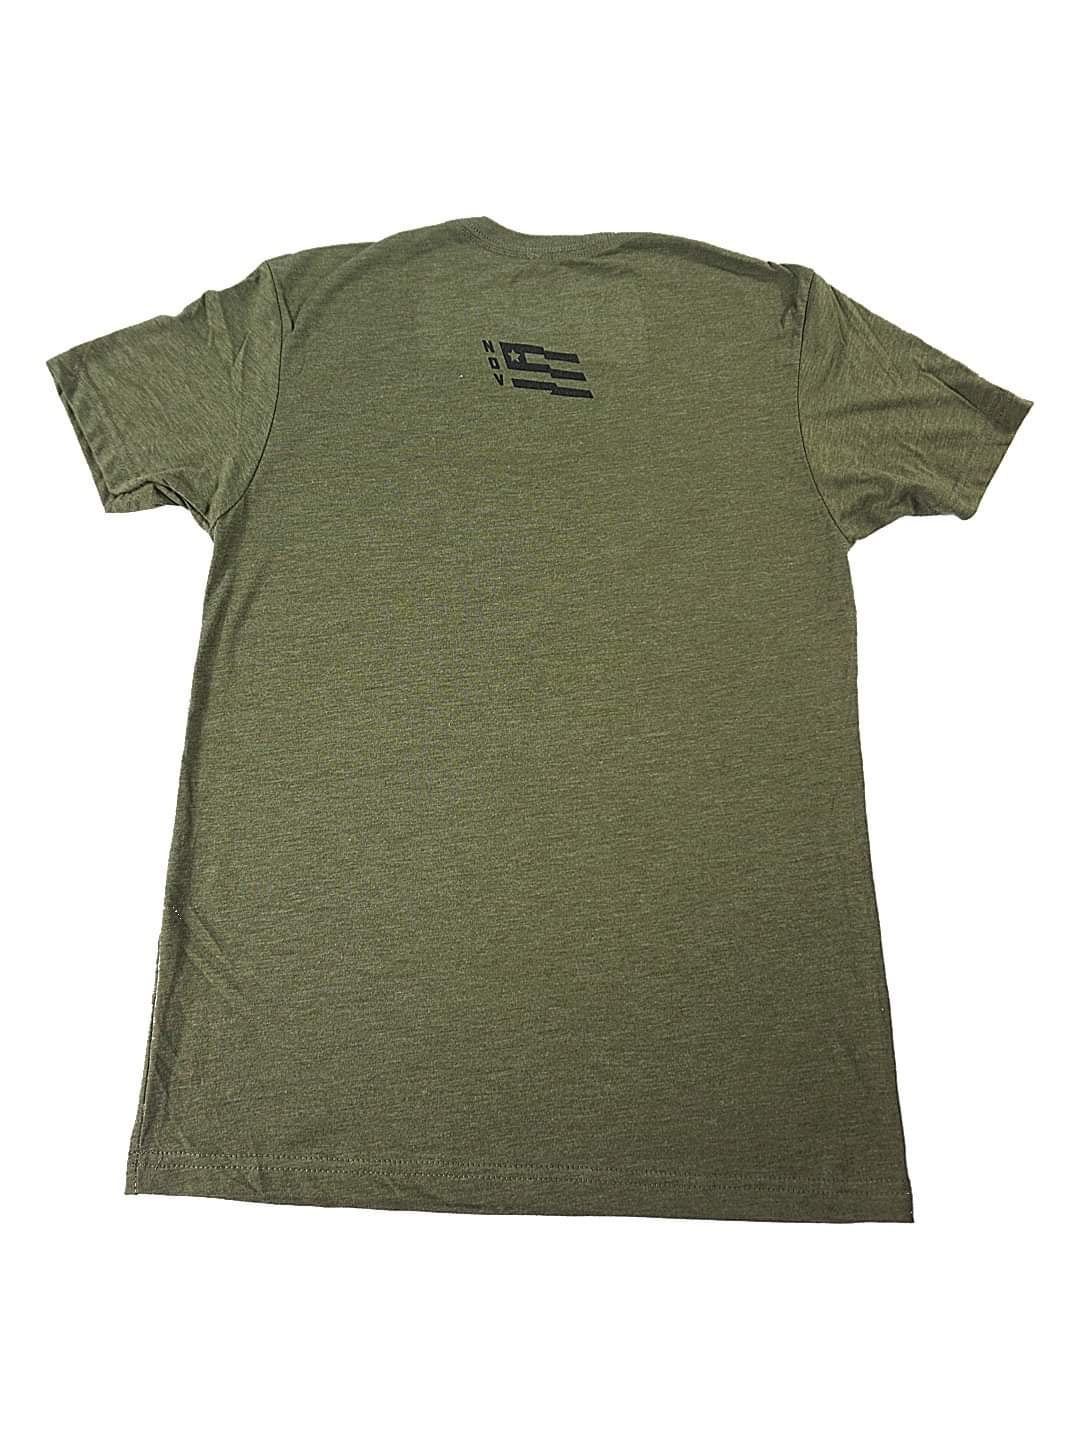 Limited Edition - Live Free Shirt - Army Green